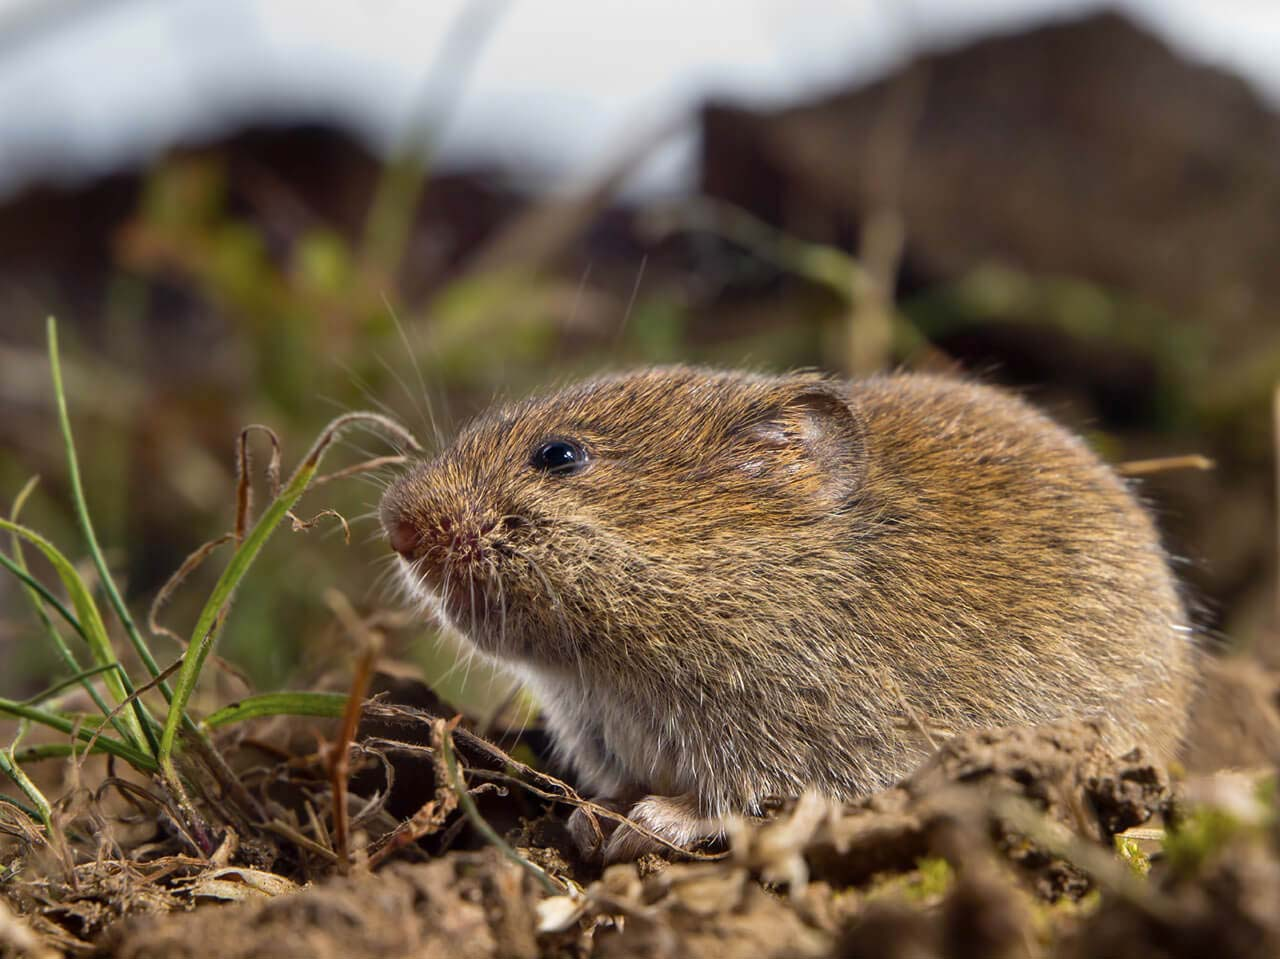 Voles prefer areas where grass is plentiful.